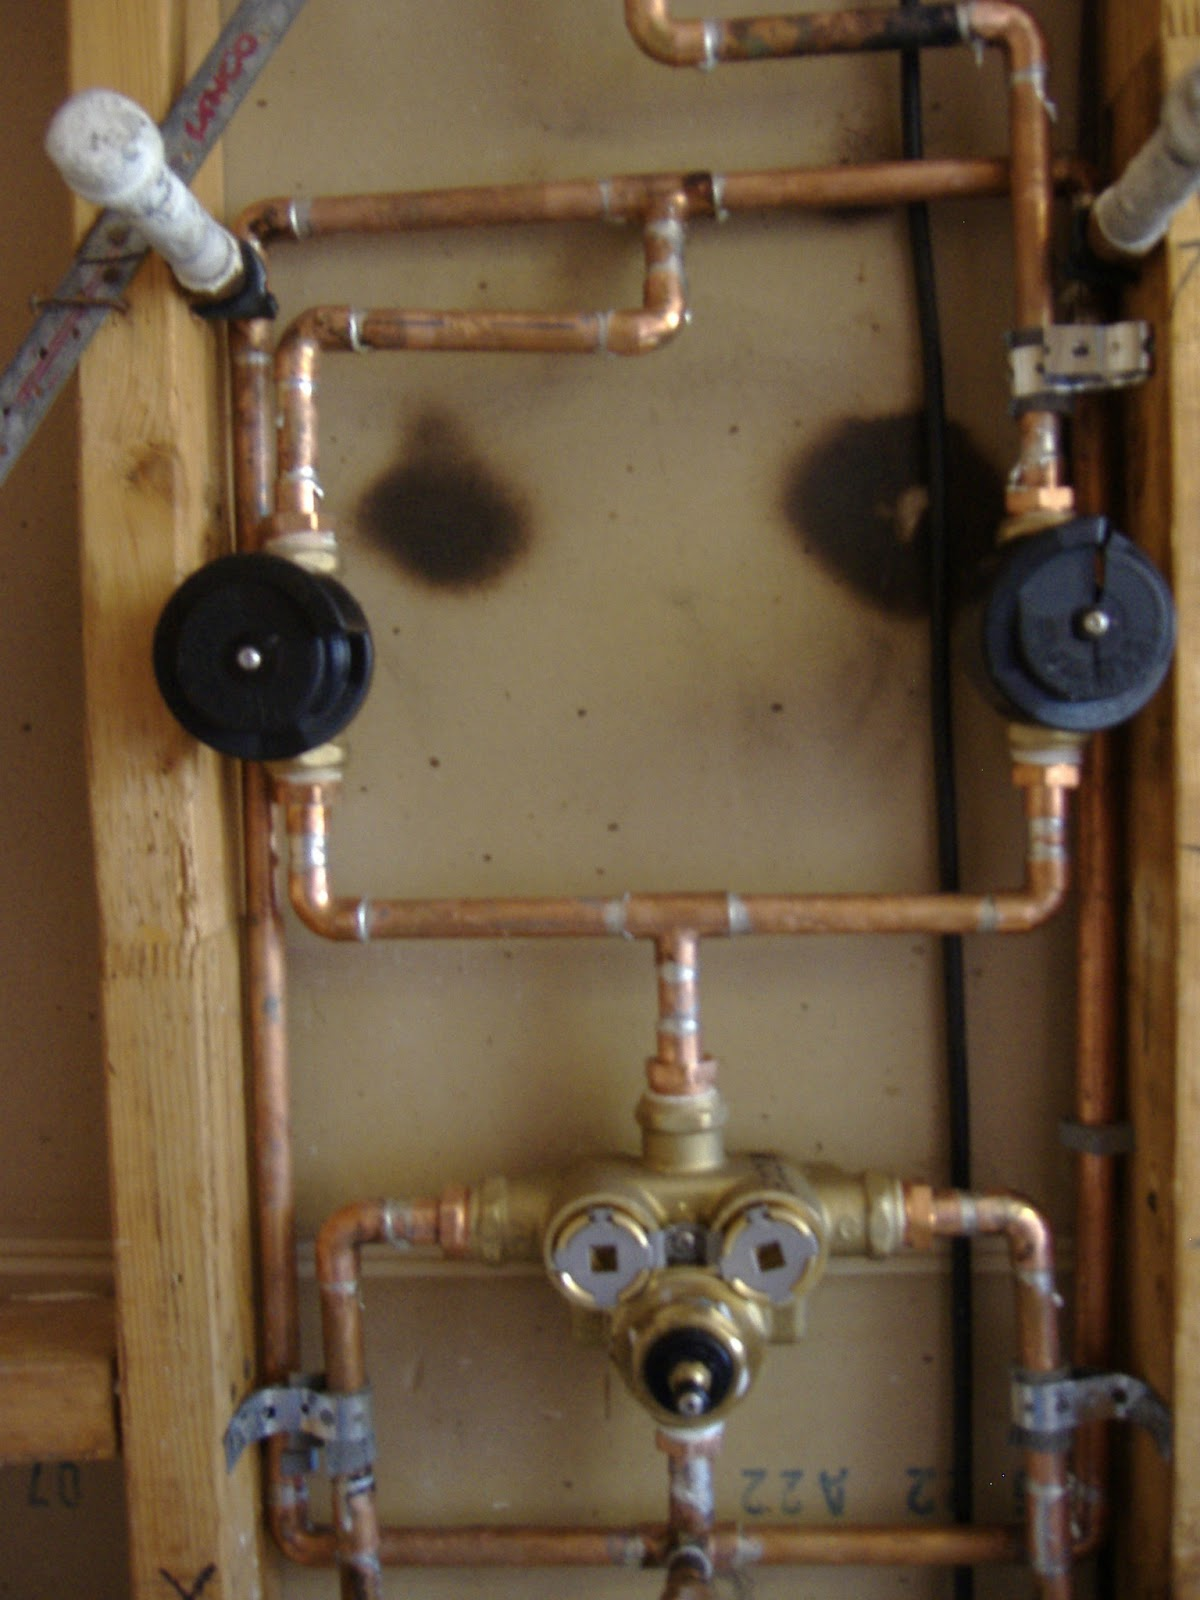 This Shows The Control Valve, The Two Black Valves Are Diverters For The Shower  Head And Three Body Sprayers ( Gray Stubs)